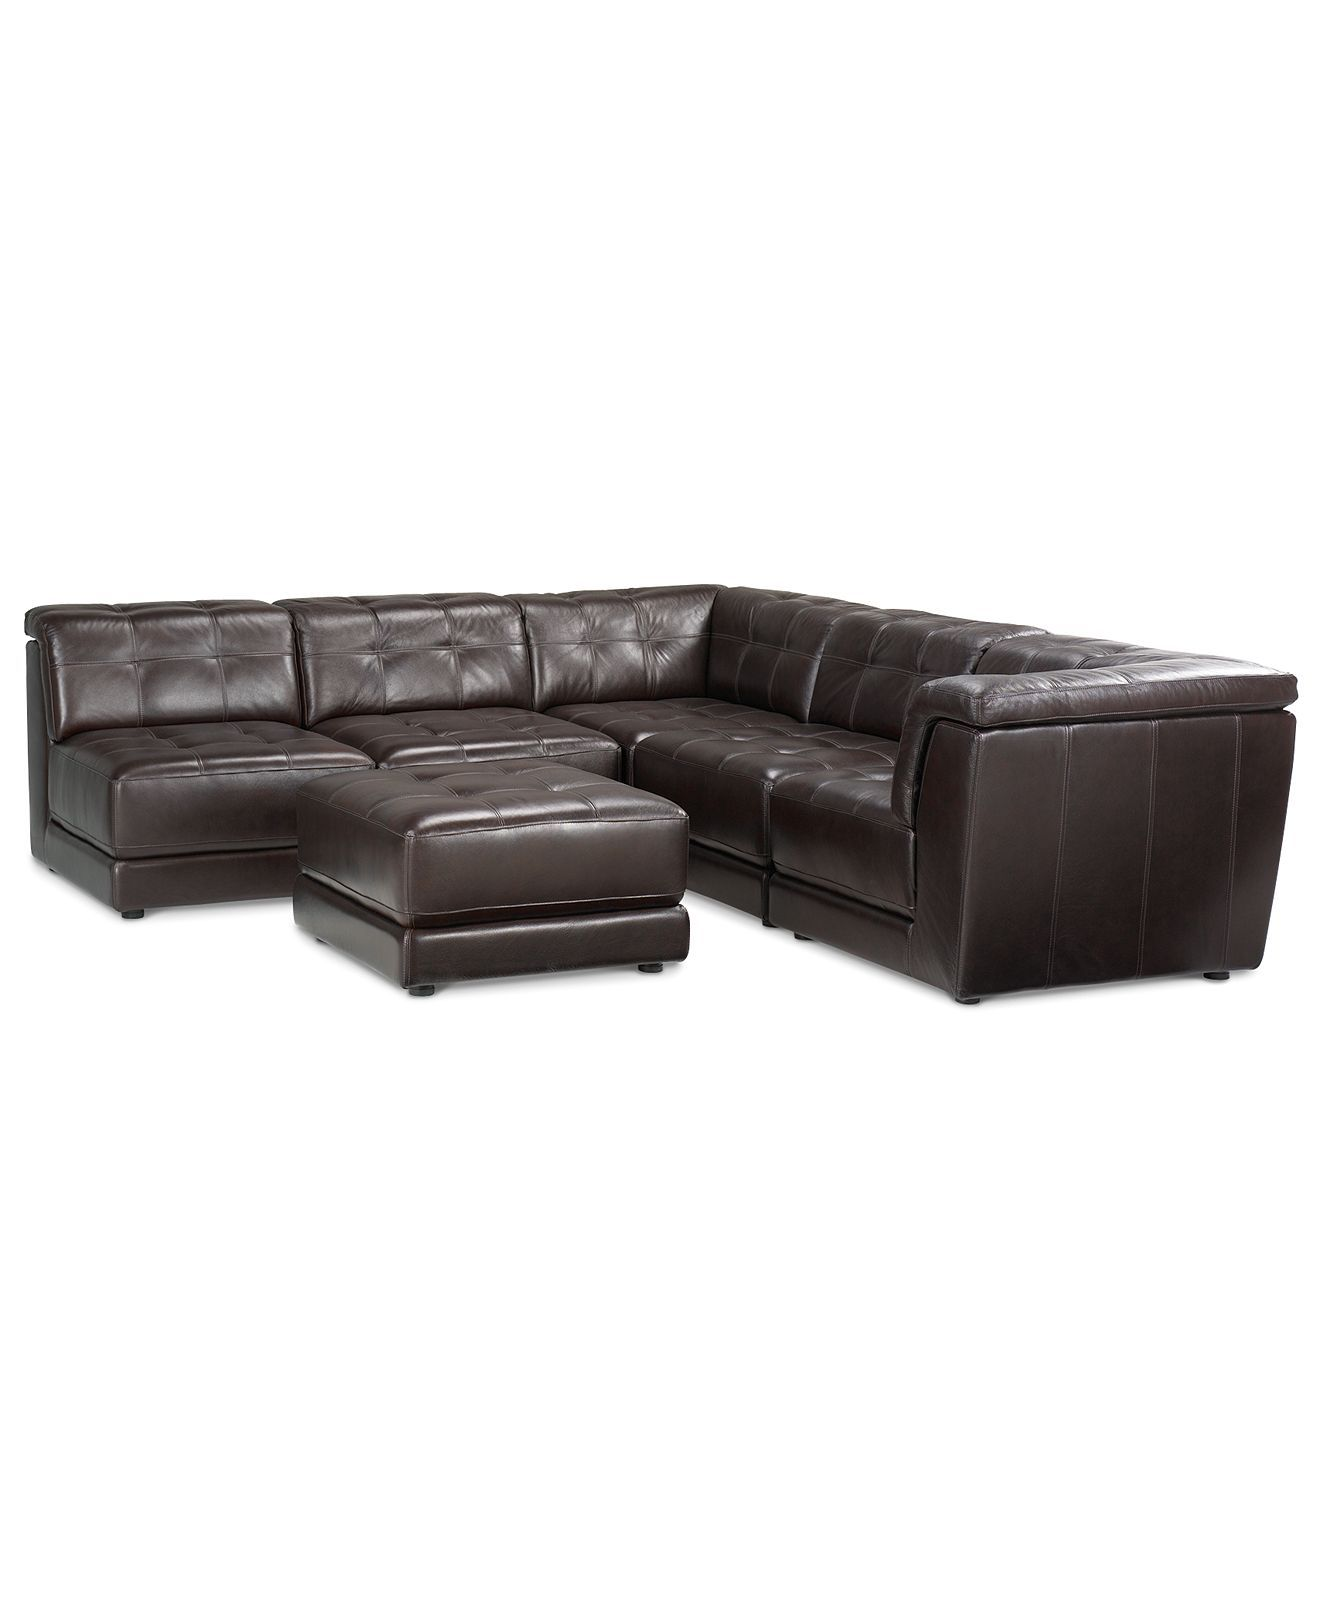 Stacey Leather 6 Piece Modular Sectional Sofa 3 Armless Chairs 2 Square Corners And Ottoman Leather Sectional Sofas Sectional Sofa Leather Modular Sofa